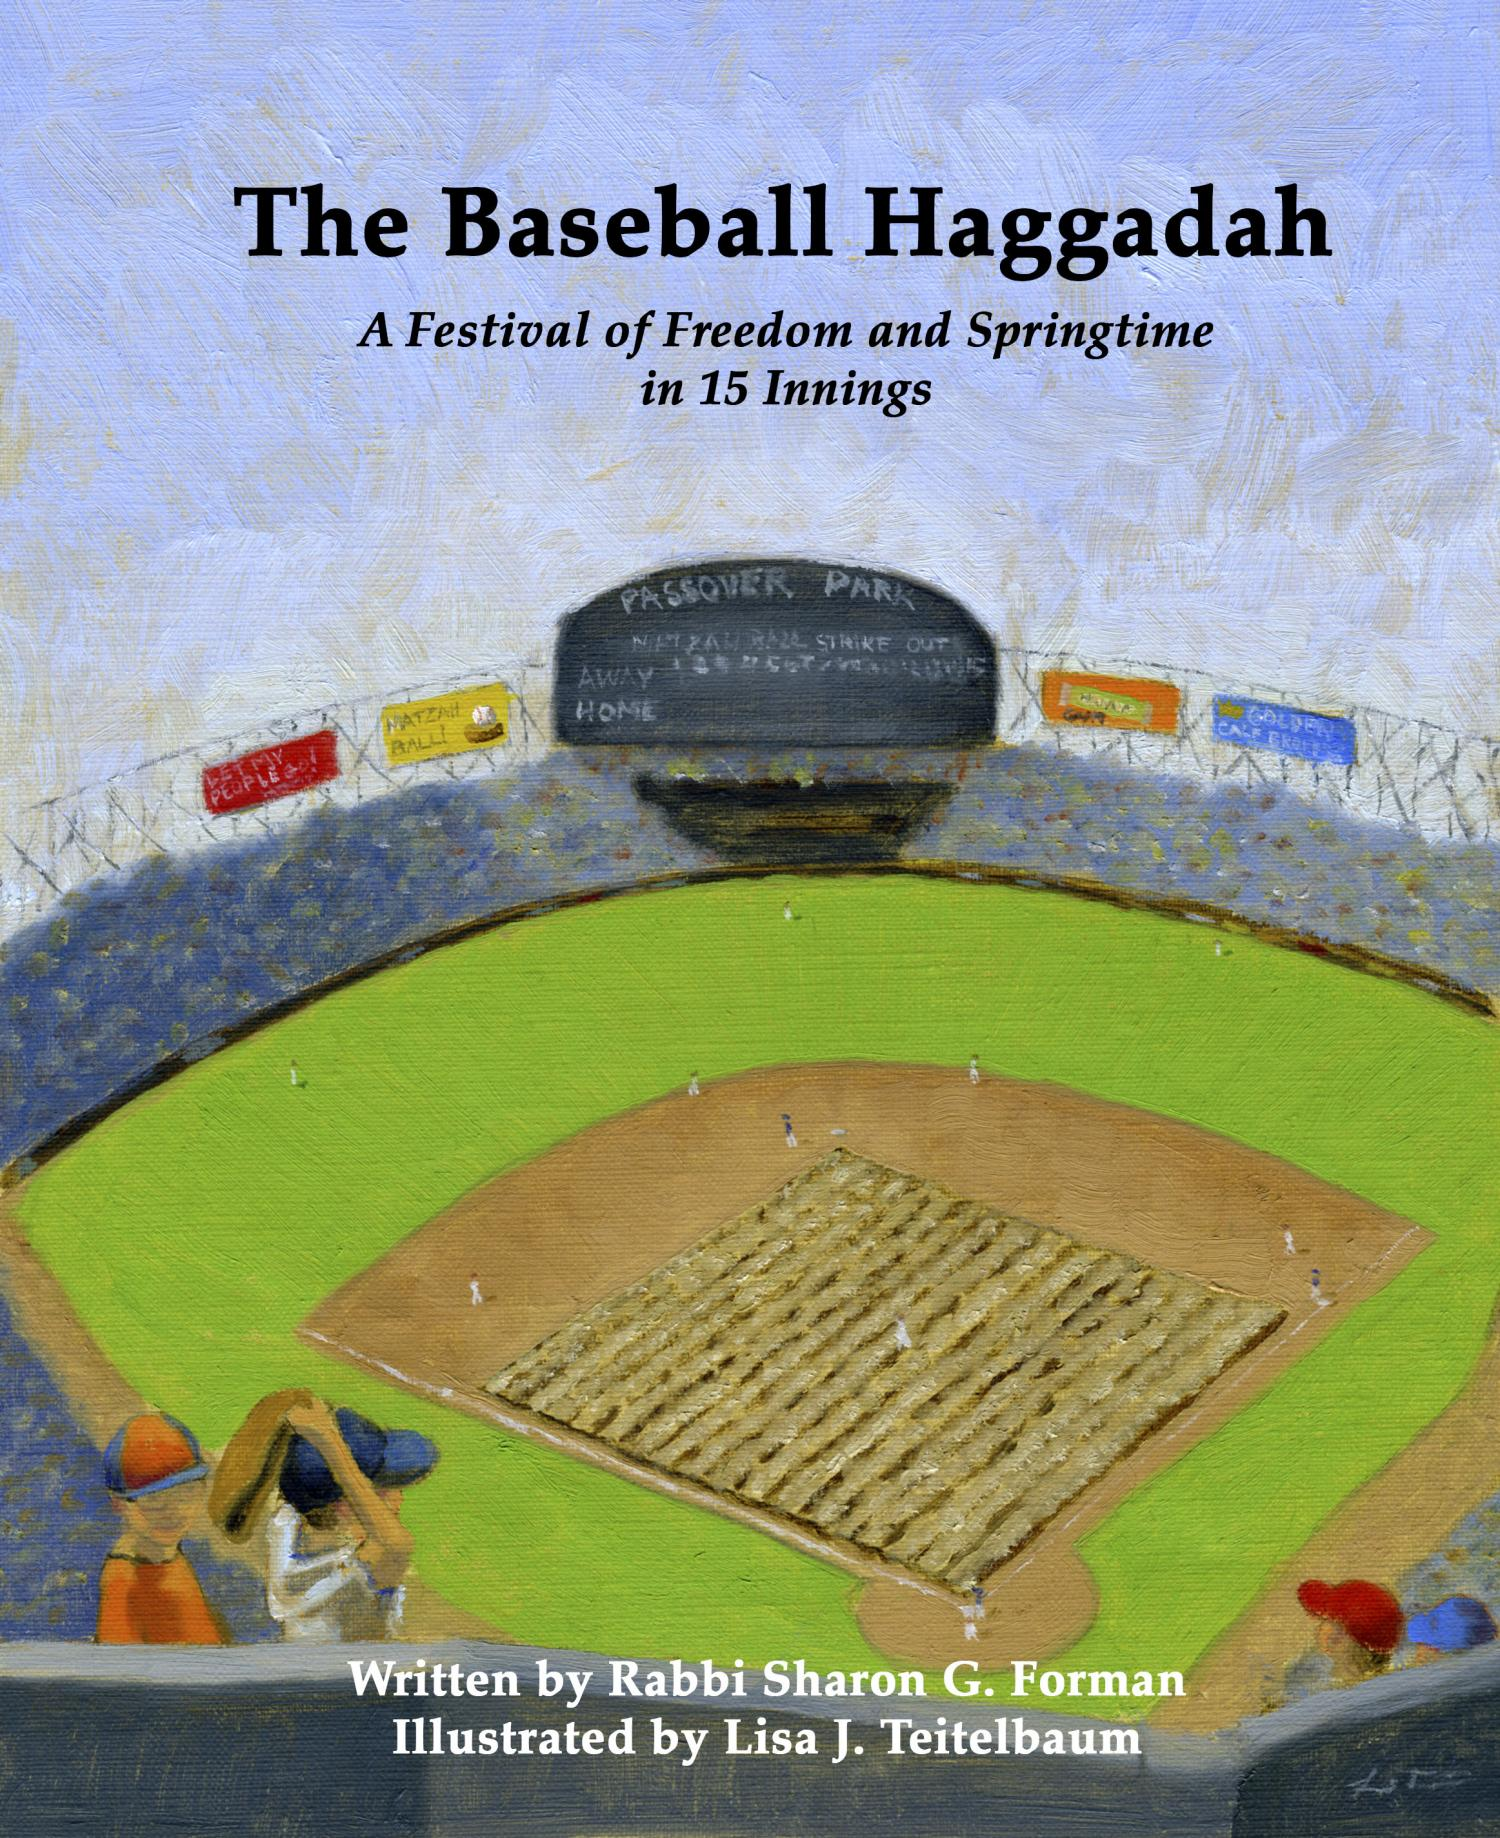 The Baseball Haggadah front cover. Children's passover haggadah. Seder. Perfect for religious school model seders. Baseball Haggadah review